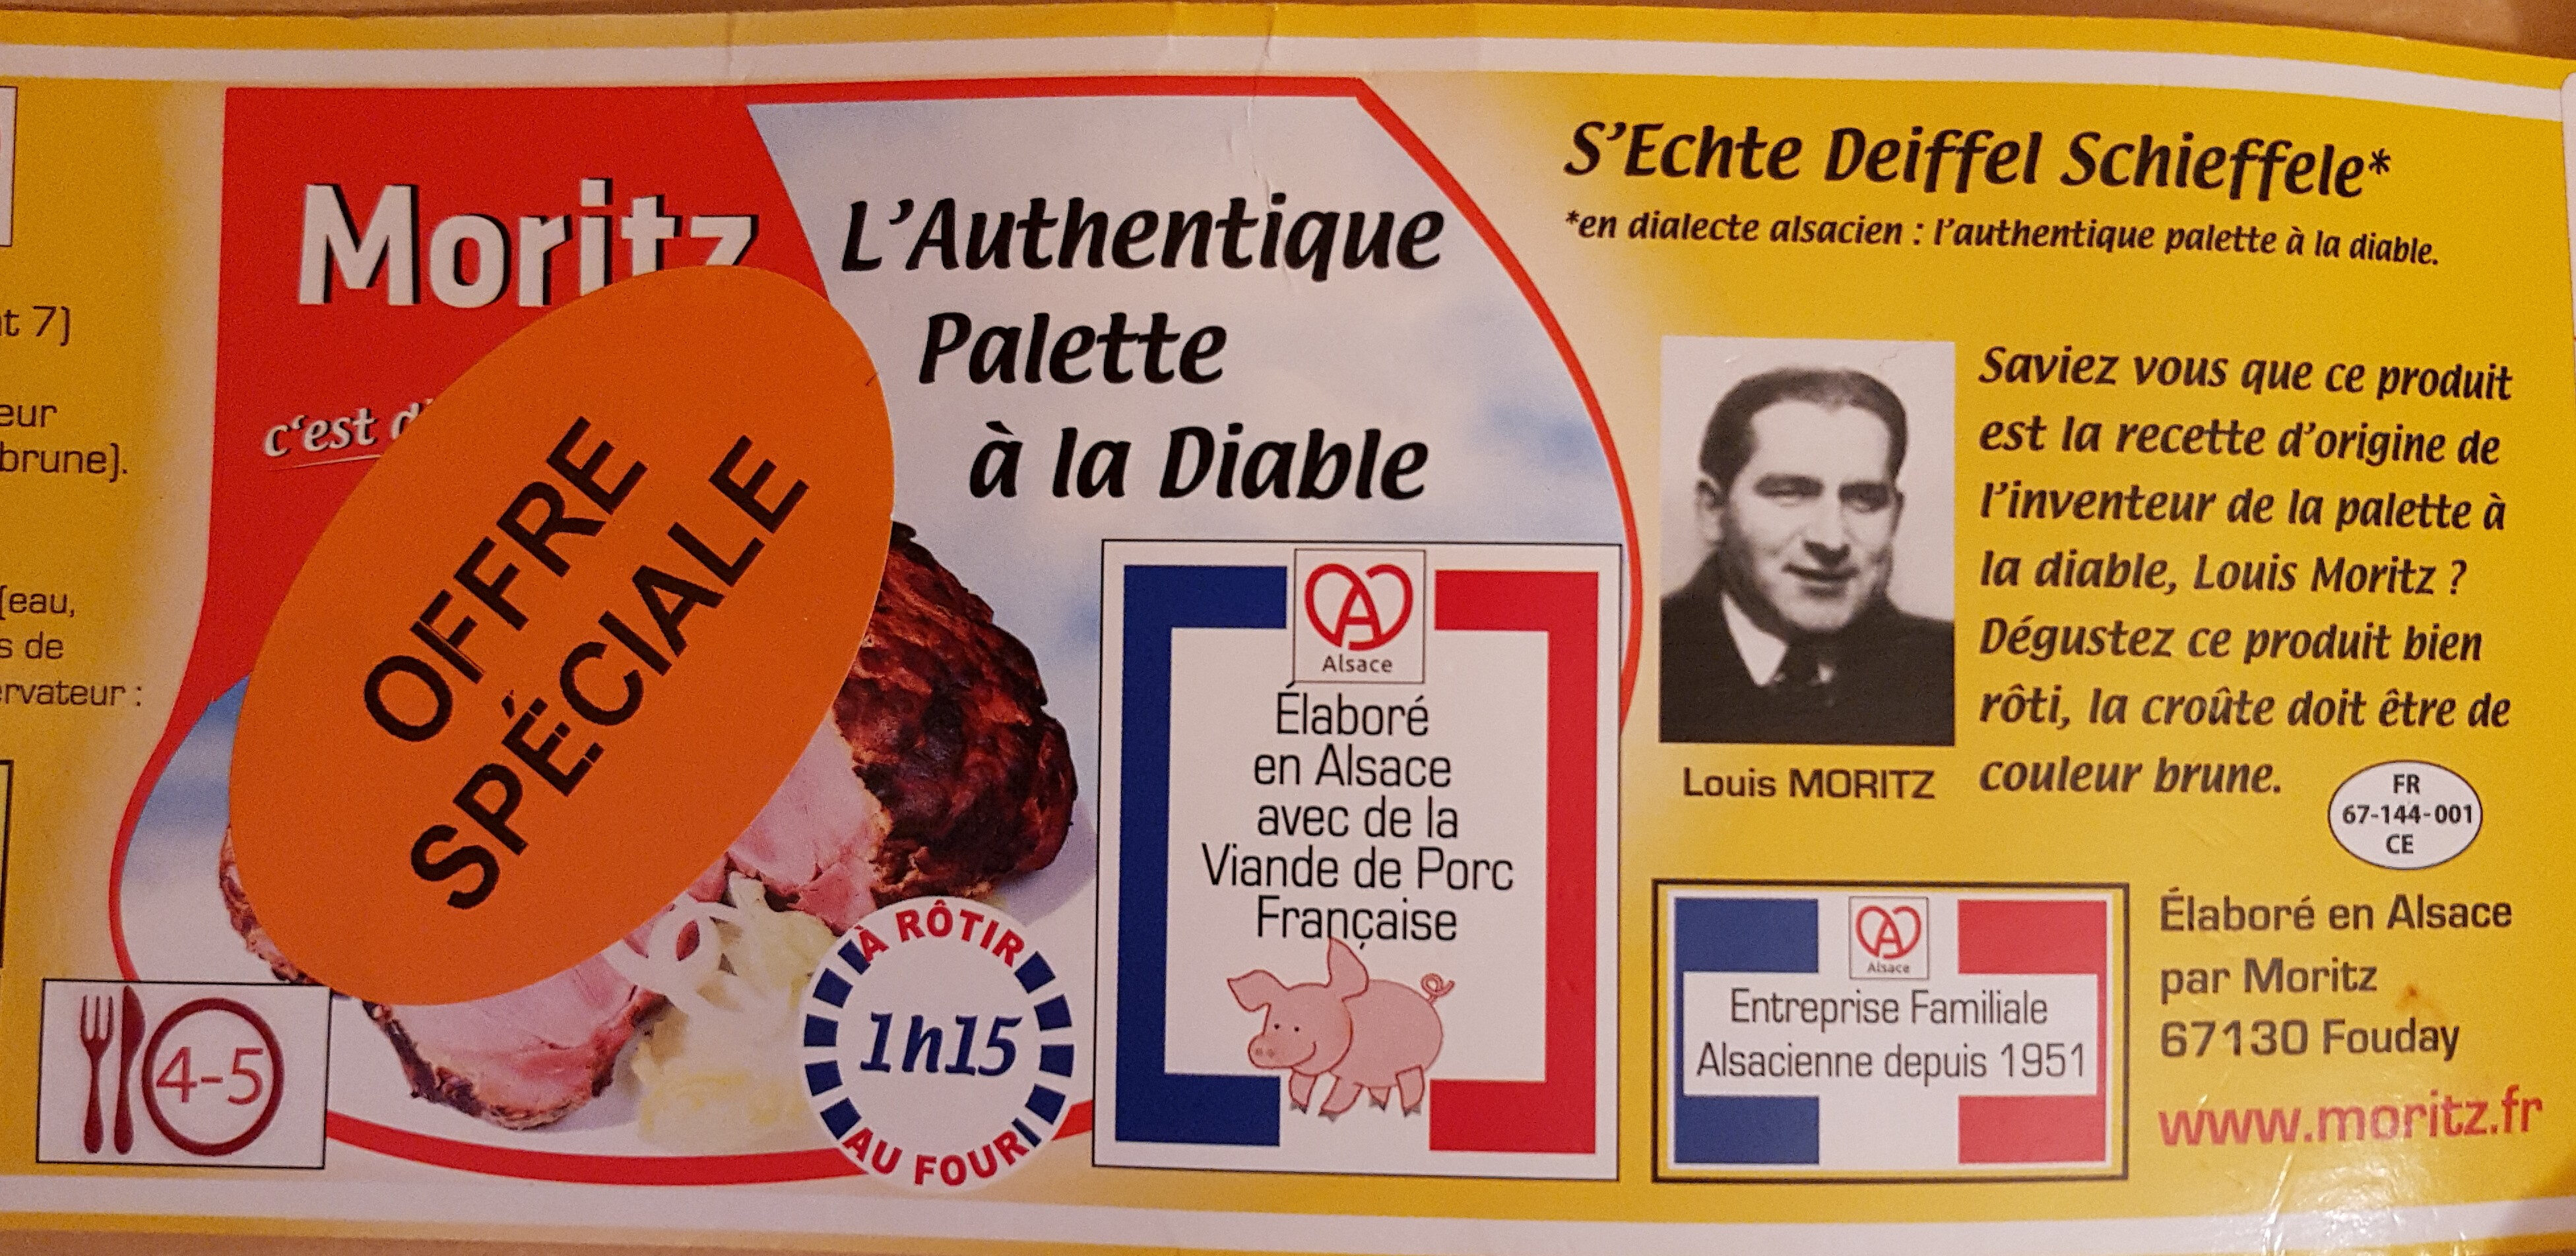 L'authentique Palette à la Diable - Produit - fr